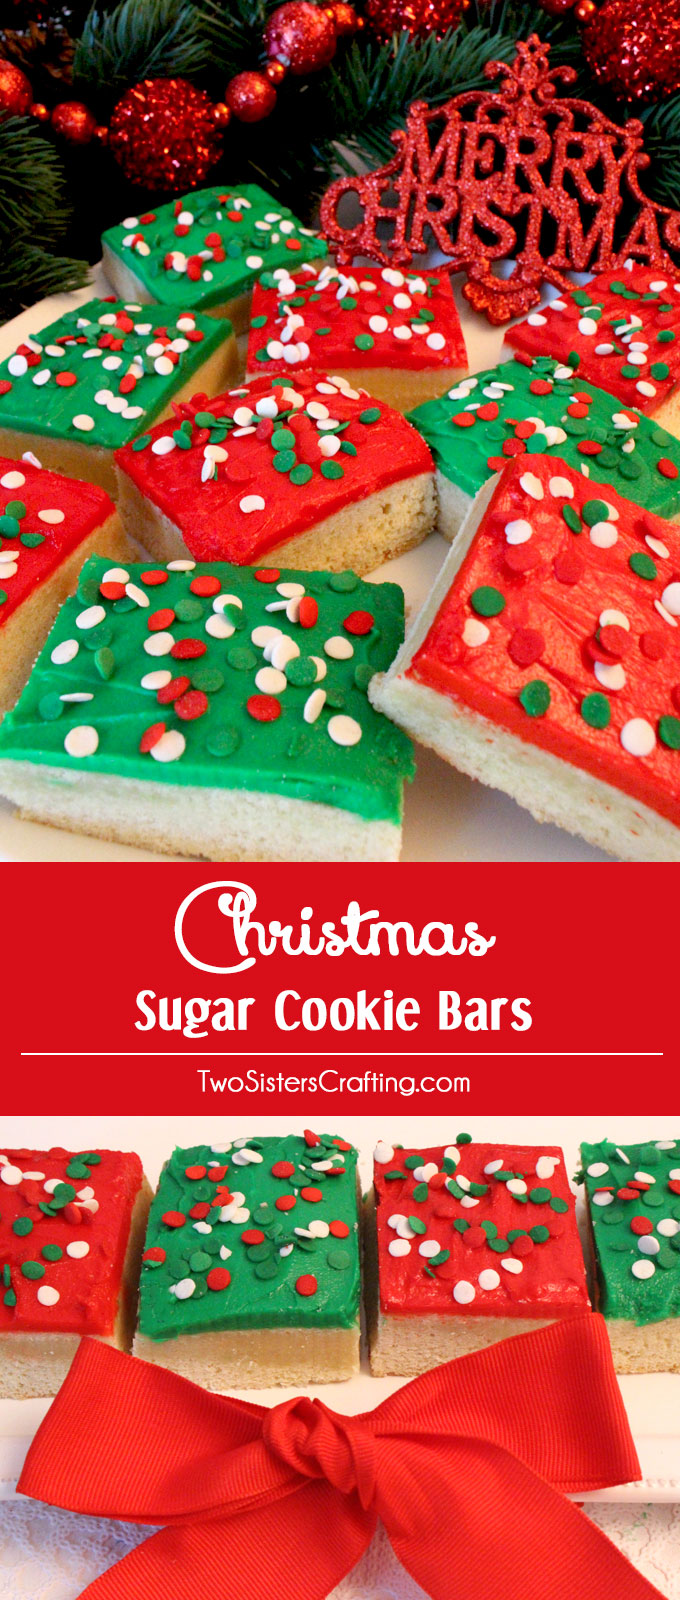 How to make christmas sugar cookies - A Unique Take On A Frosted Sugar Cookie These Christmas Sugar Cookie Bars Are Delicious More Fun Christmas Recipes